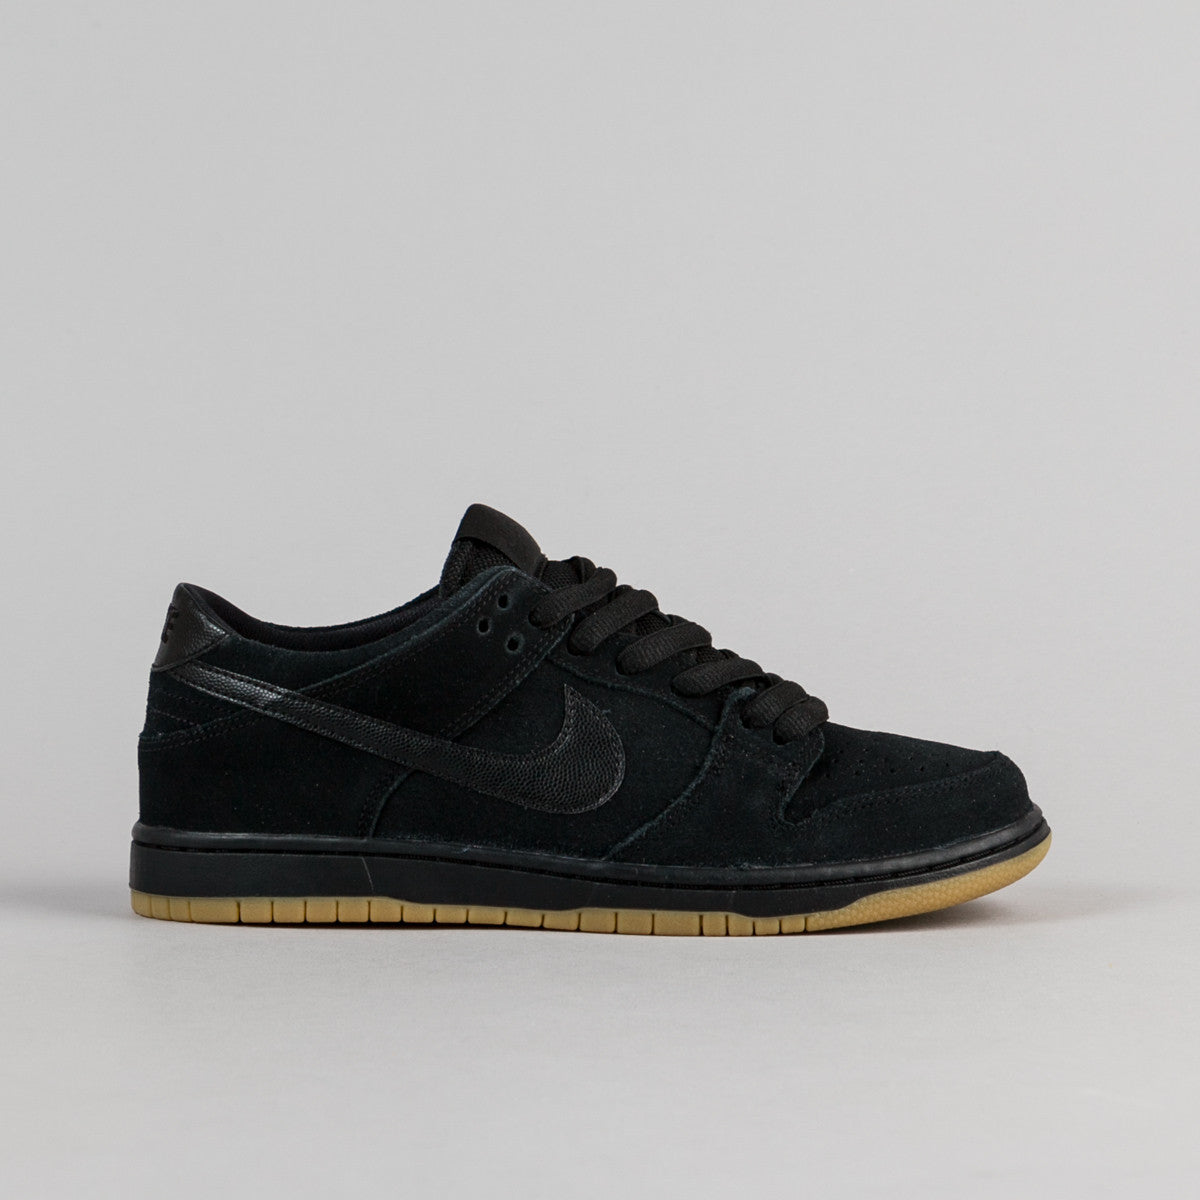 nike dunk low cl the newest lebron shoes